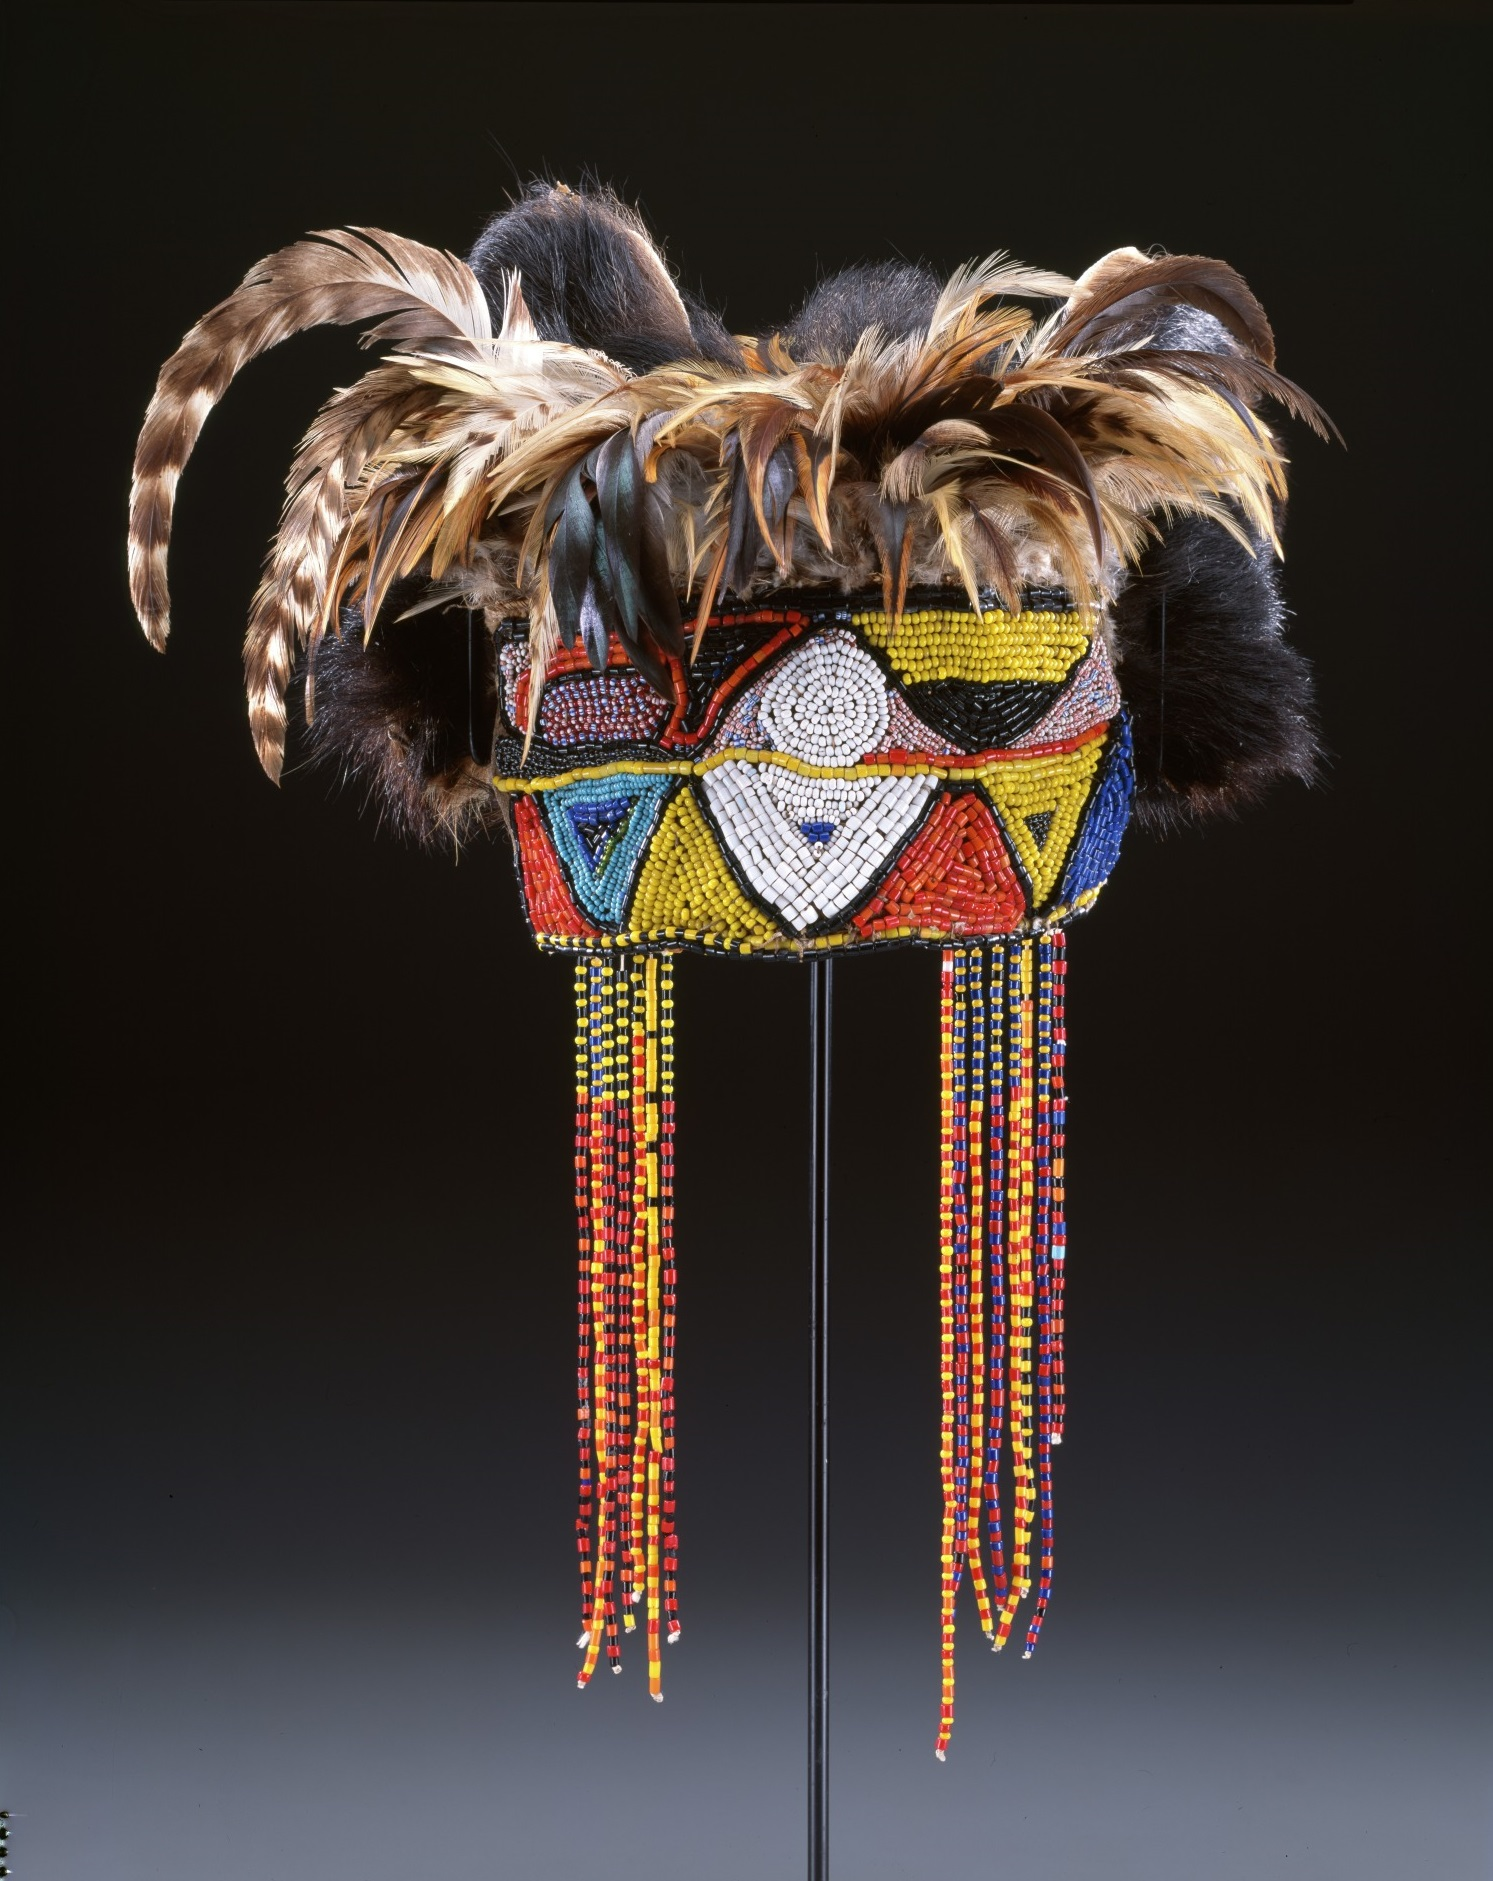 Diviners headdress (nkaka), Tabwa peoples, mid–20th century, Democratic Republic of the Congo, Africa, leather, fiber, beads, and feathers, Dallas Museum of Art, gift of The Cecil and Ida Green Foundation 1999.62